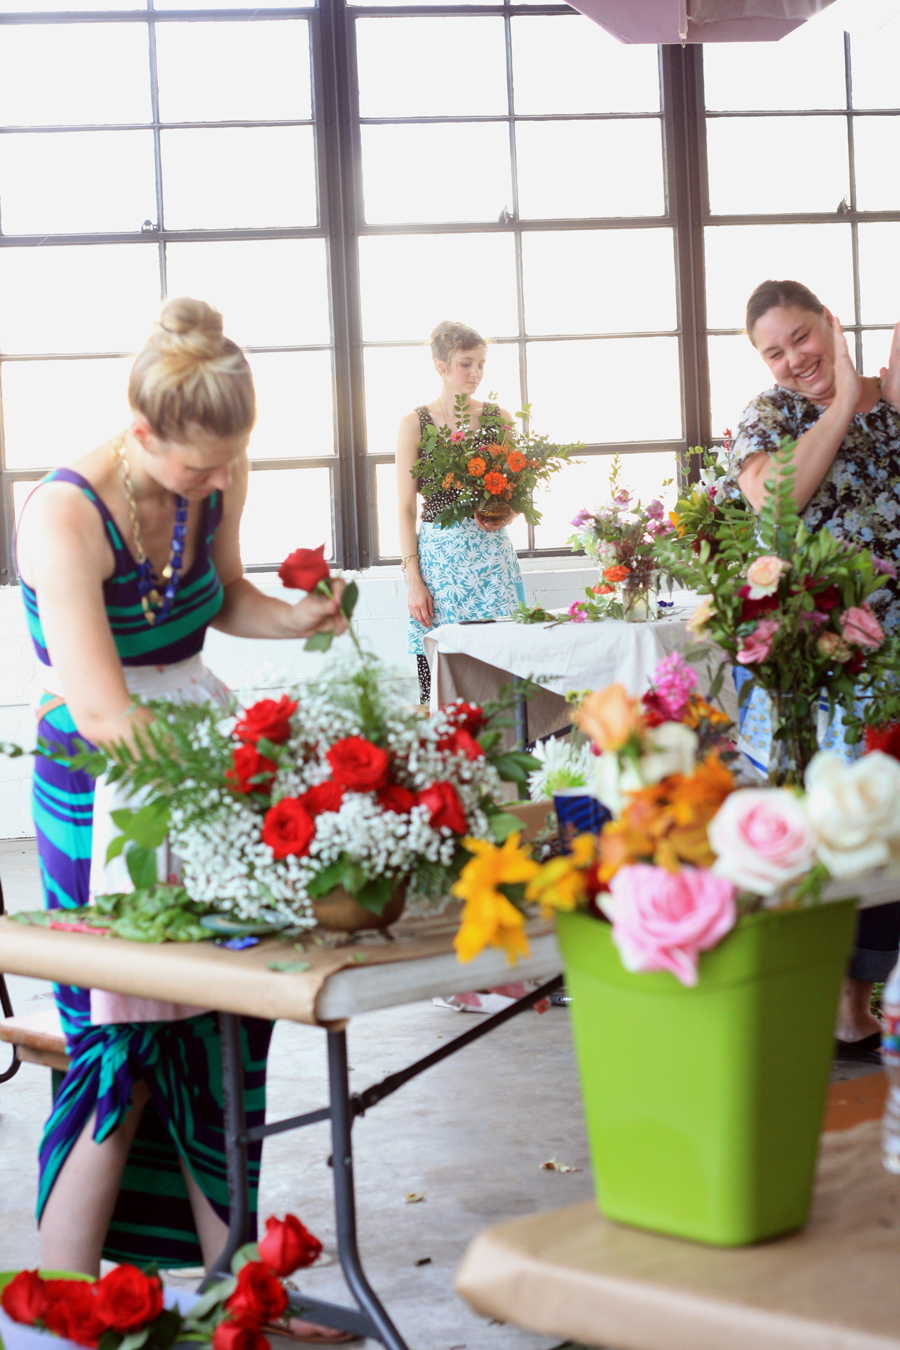 Everbloom-Designs-Floral-Design-Workshop-41